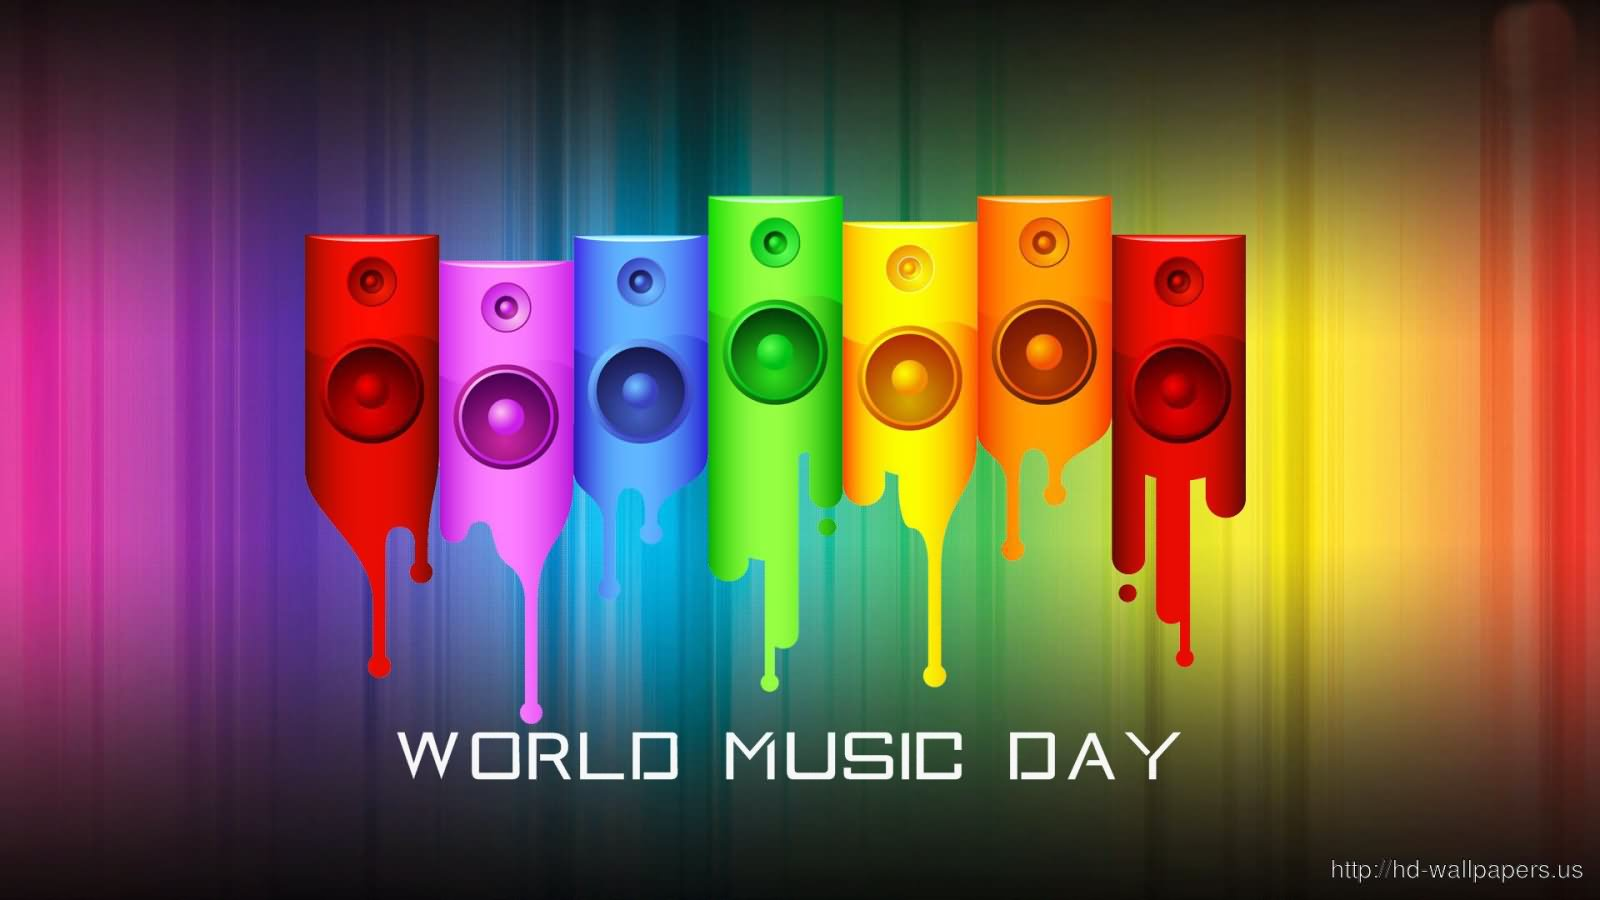 Beautiful Picture Of The World Music Day 2016